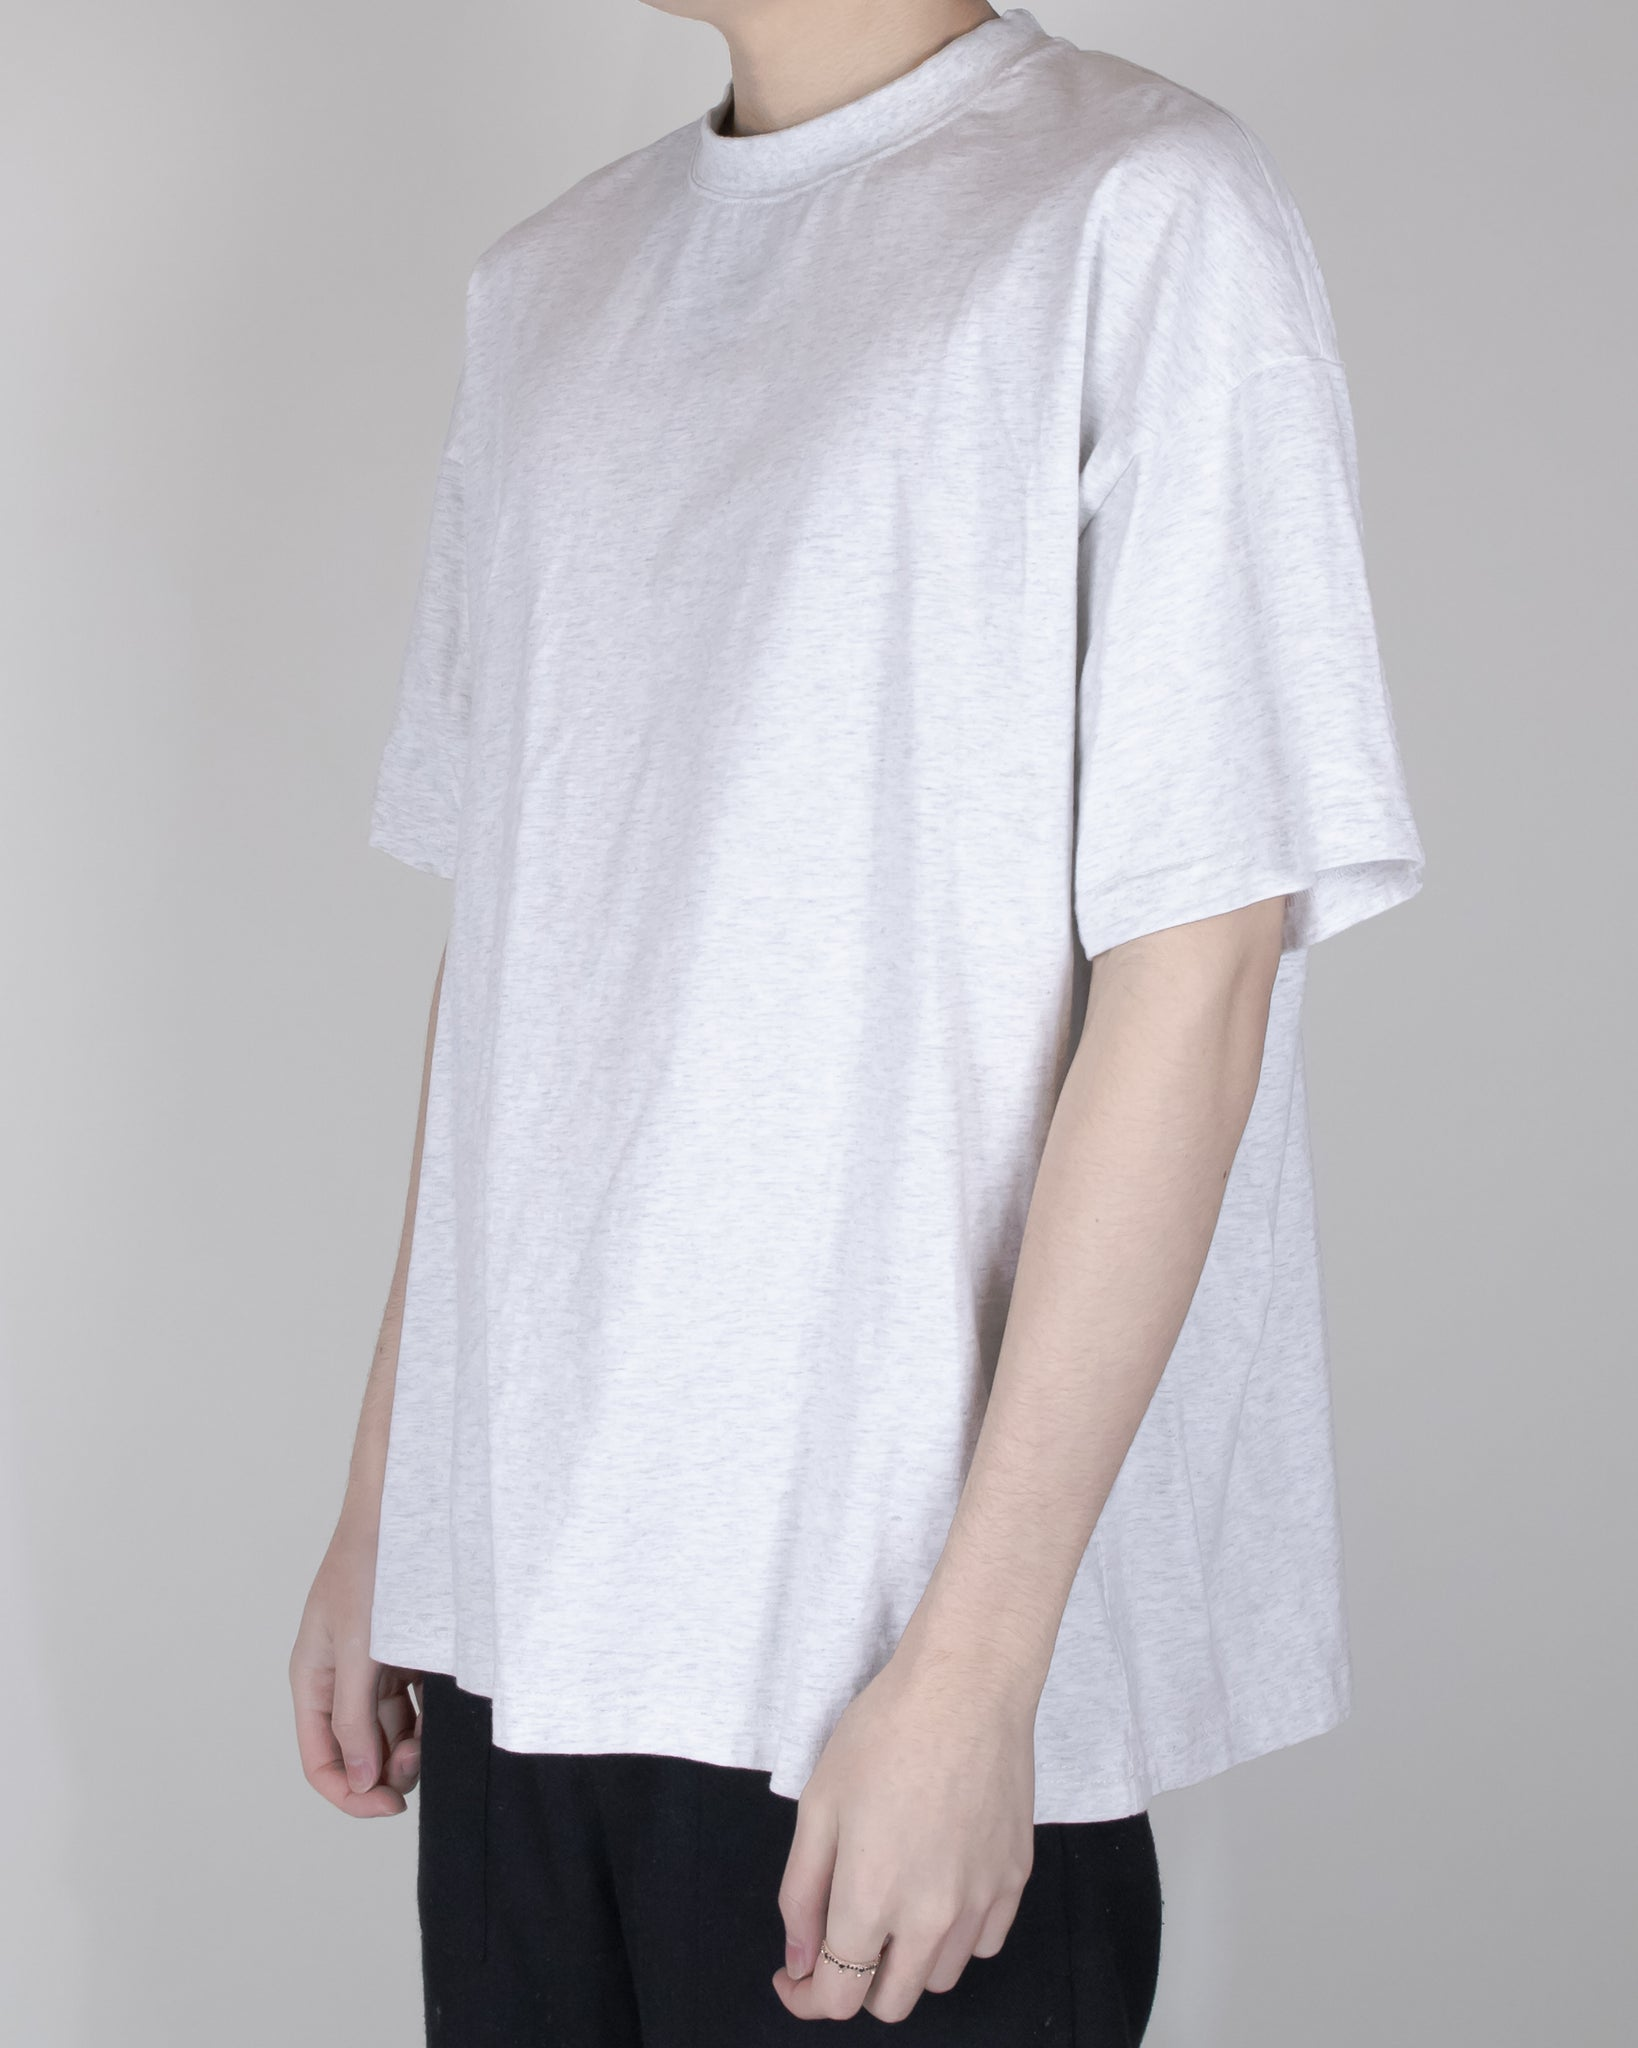 Unnecessary Brushed Cotton Crew Neck Multi Panel T-Shirt